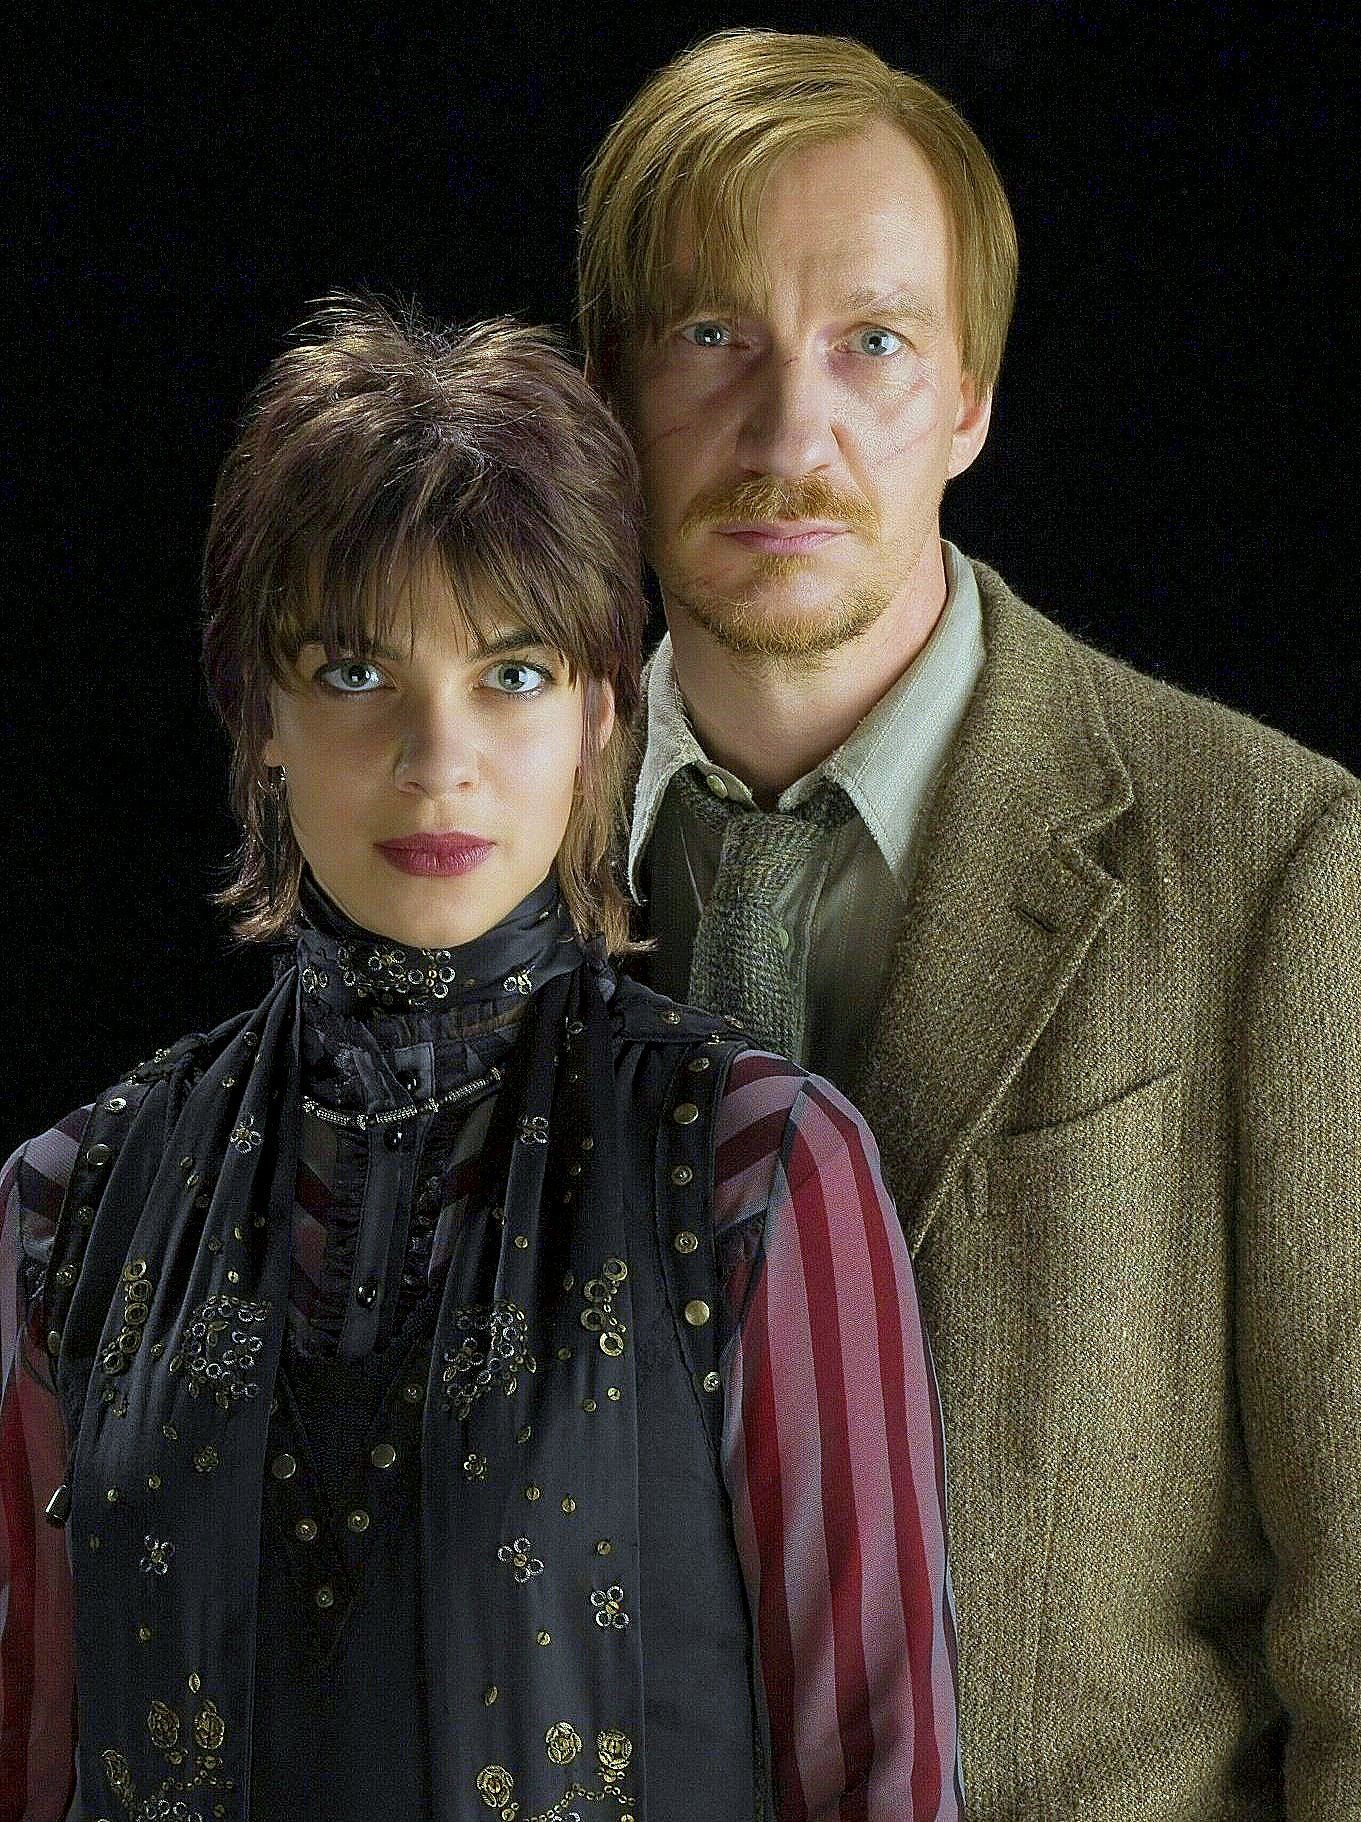 Nymphadora Tonks Remus Lupin I Wish My Husband Was Into Dressing Up Cause This Would Make An Awesome Couples Costume Remus Lupin Paar Kostume Heute Leben